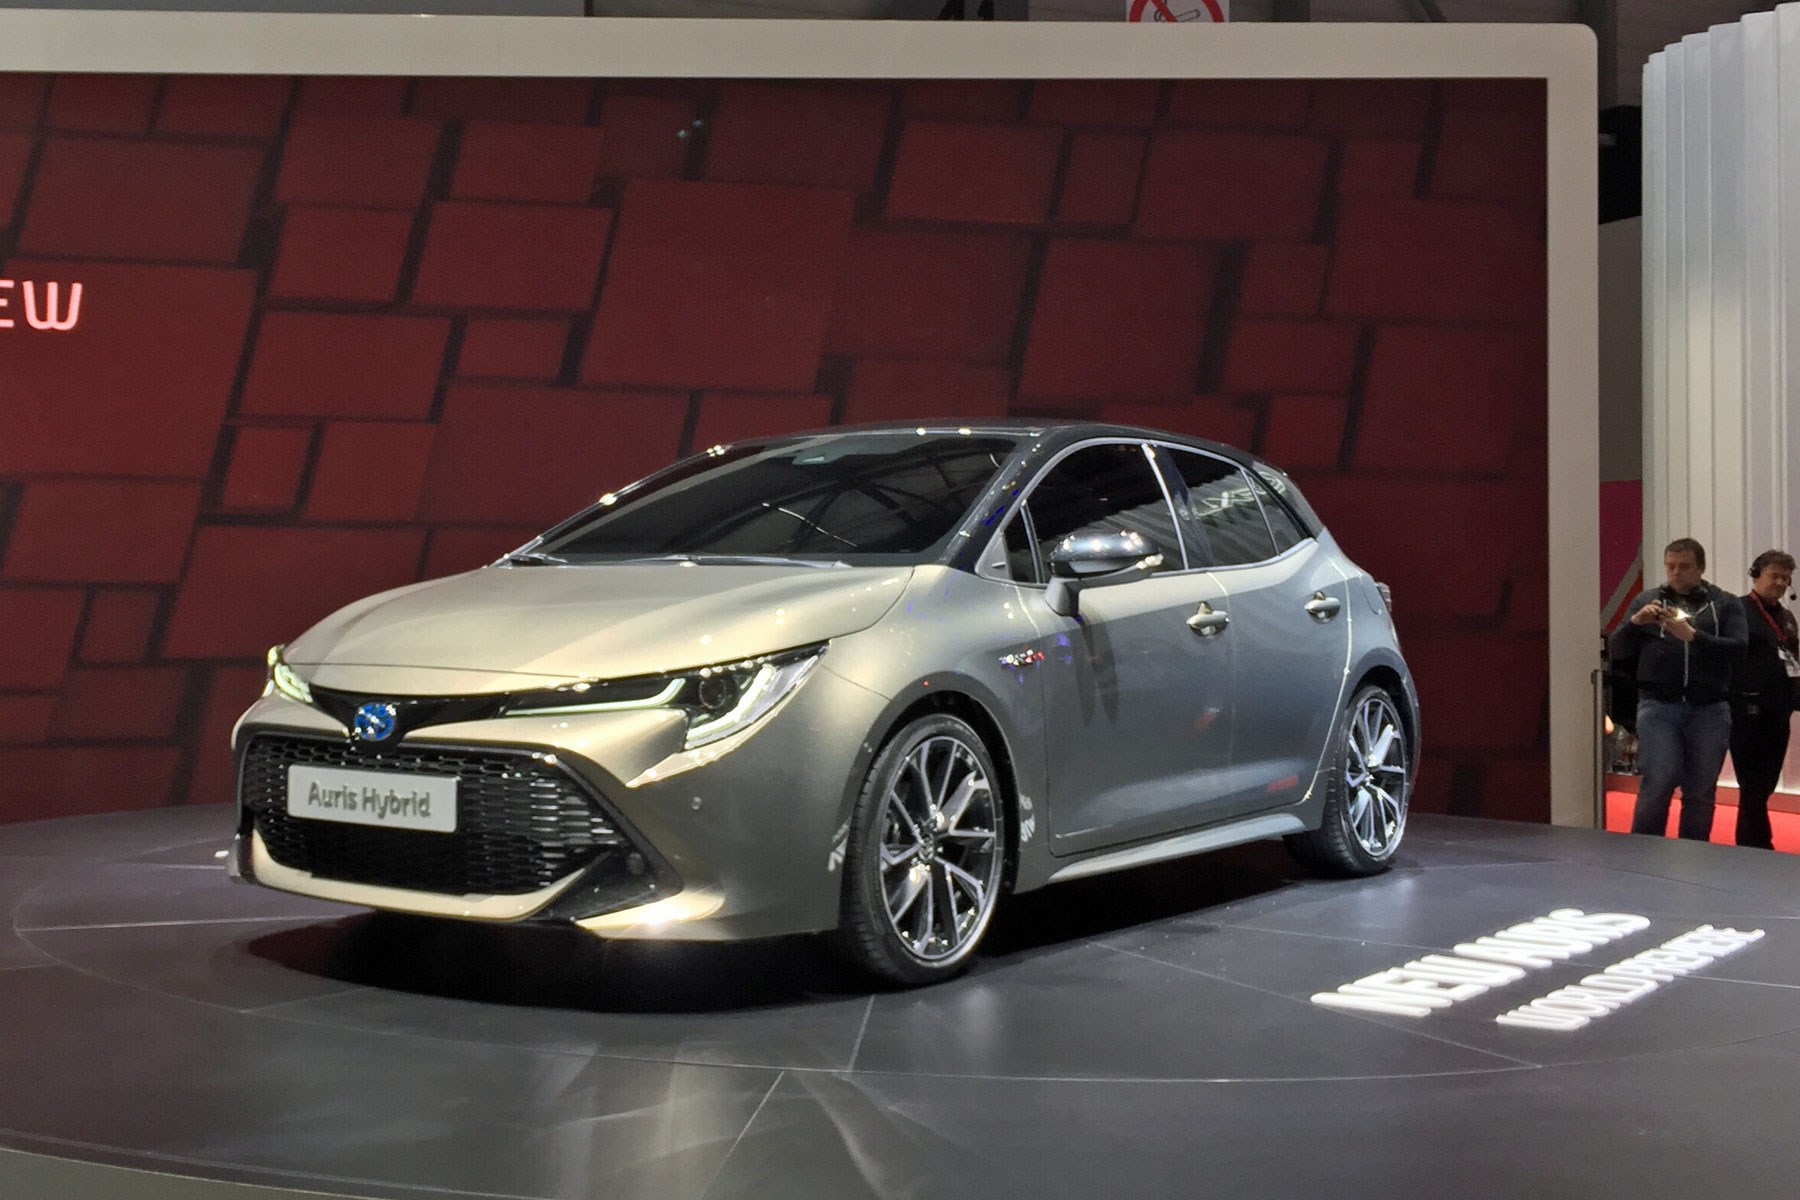 New Toyota Auris Uk Price Specs Sale Date Hybrid